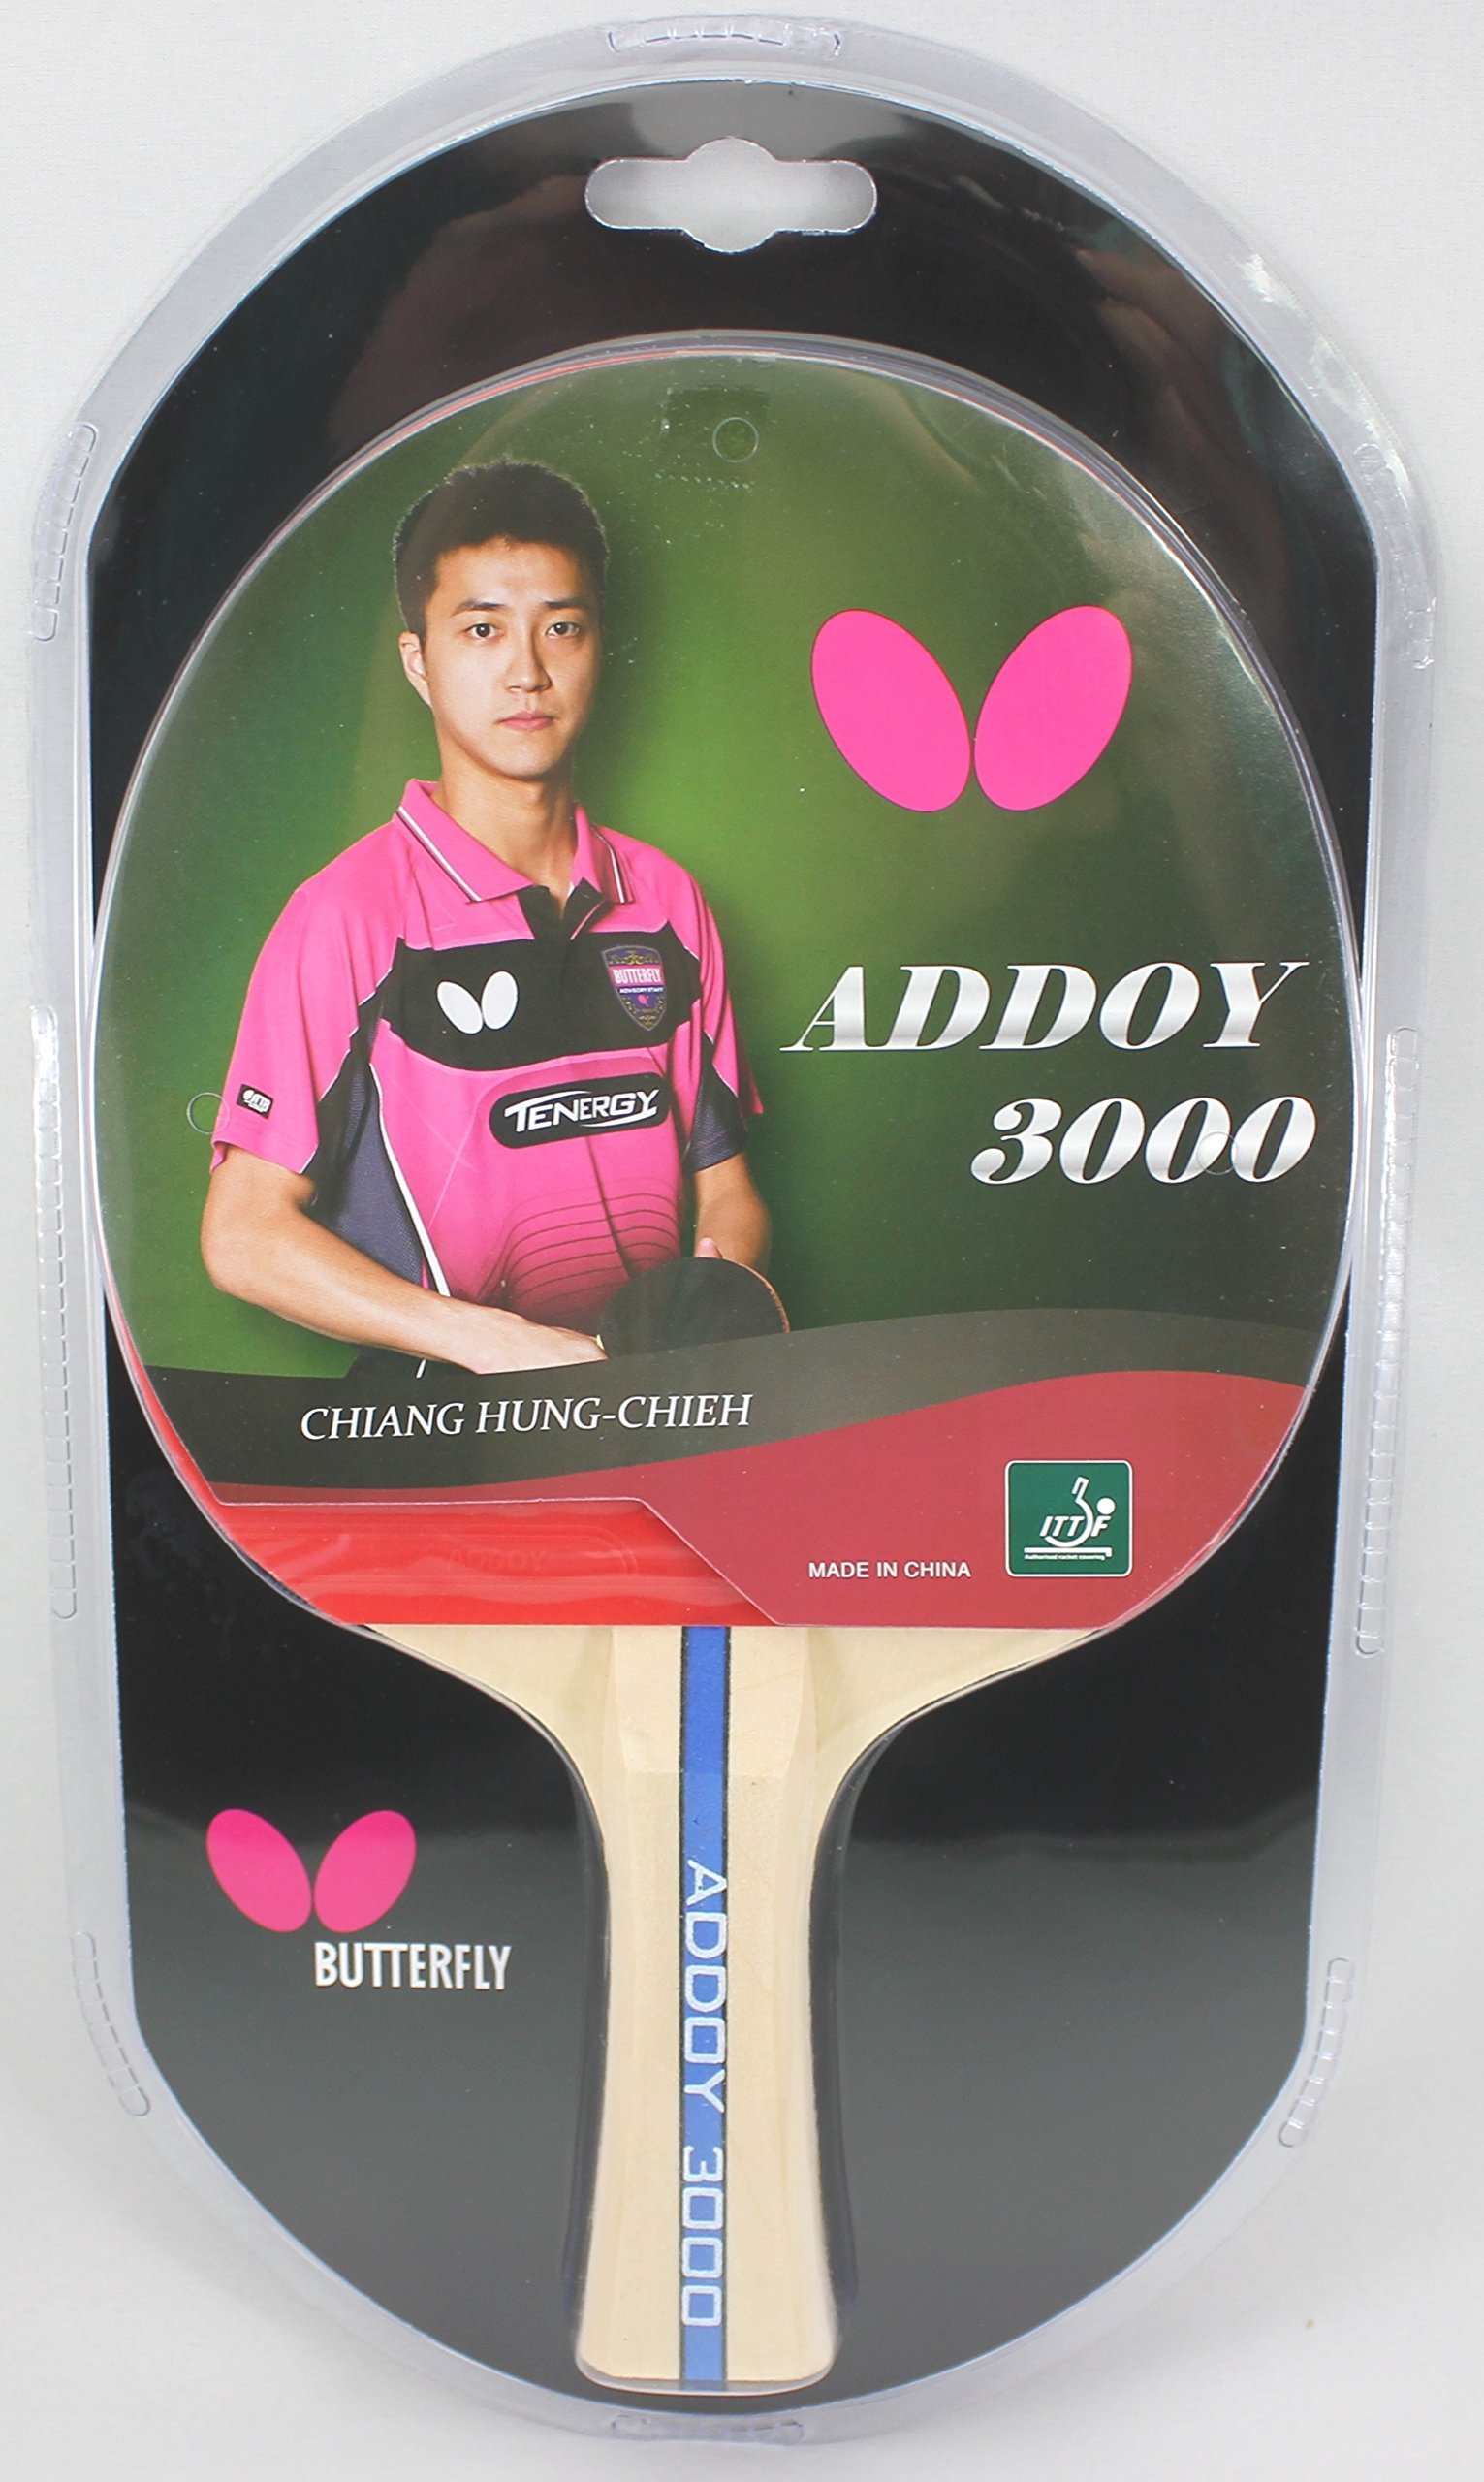 Butterfly Addoy Table Tennis Racket – ITTF Approved Ping Pong Paddle – Attack with Great Control